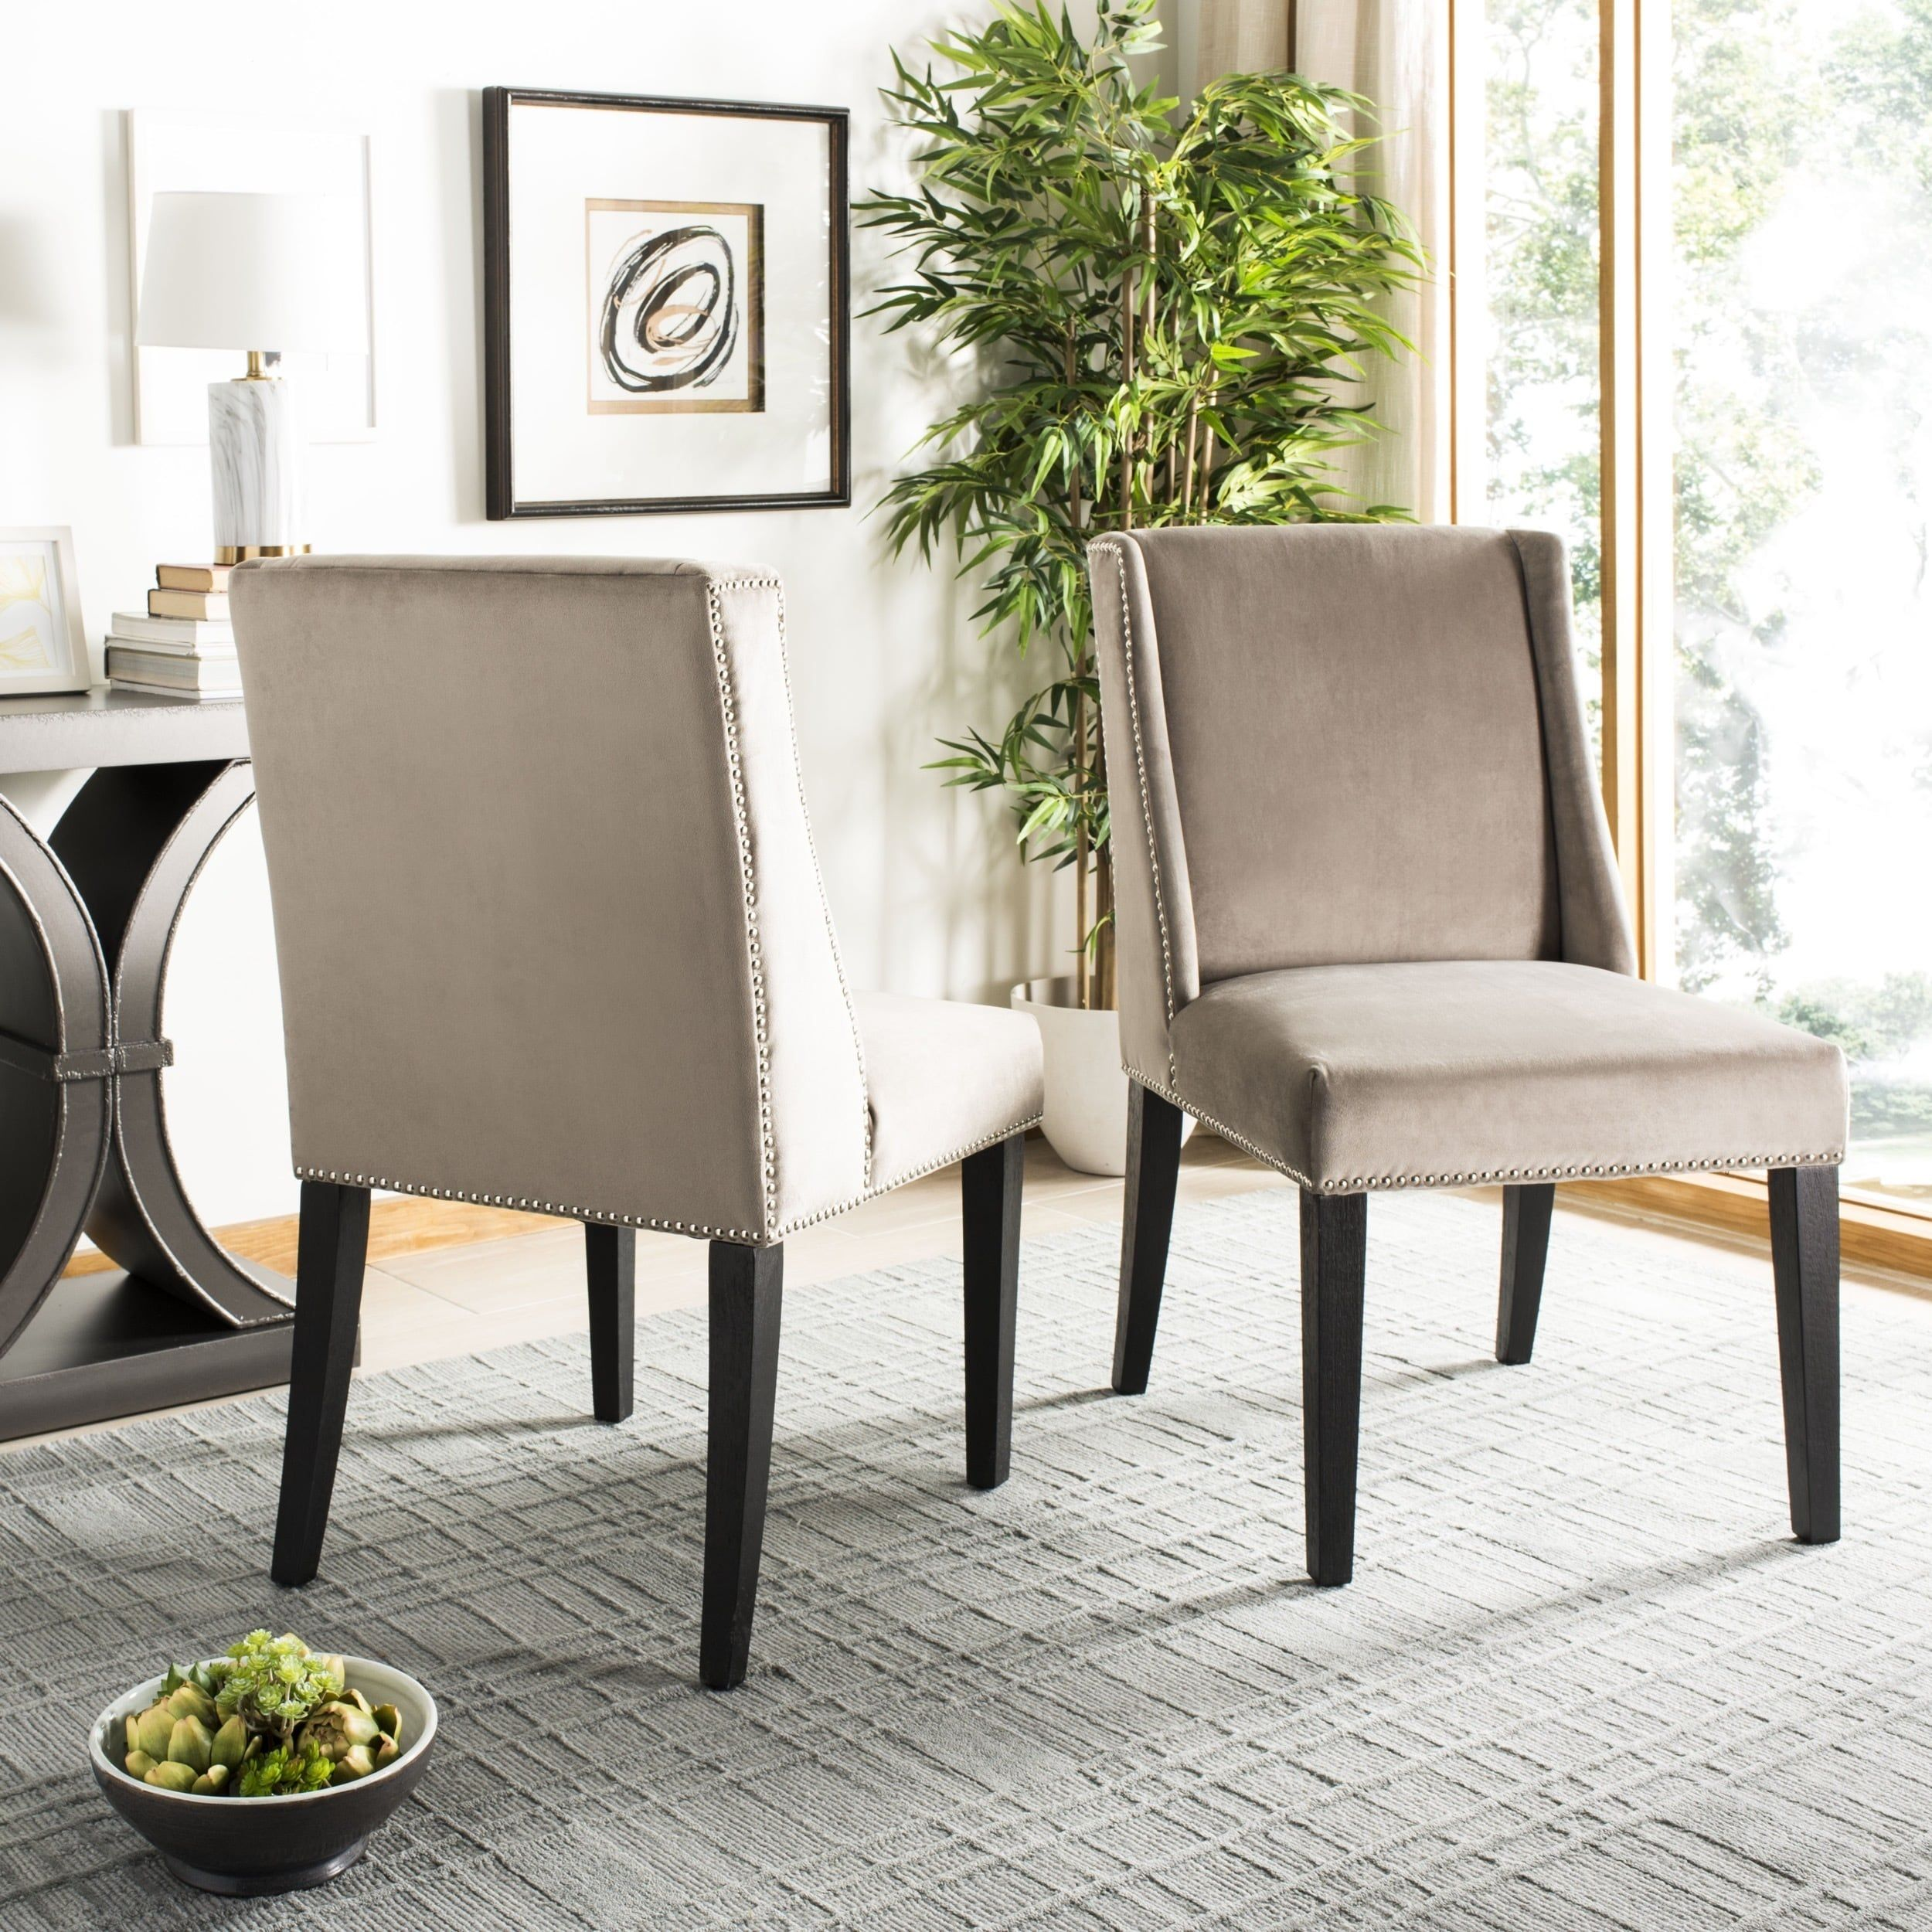 Overstock Com Online Shopping Bedding Furniture Electronics Jewelry Clothing More Dining Chairs Dining Chair Set Safavieh Furniture